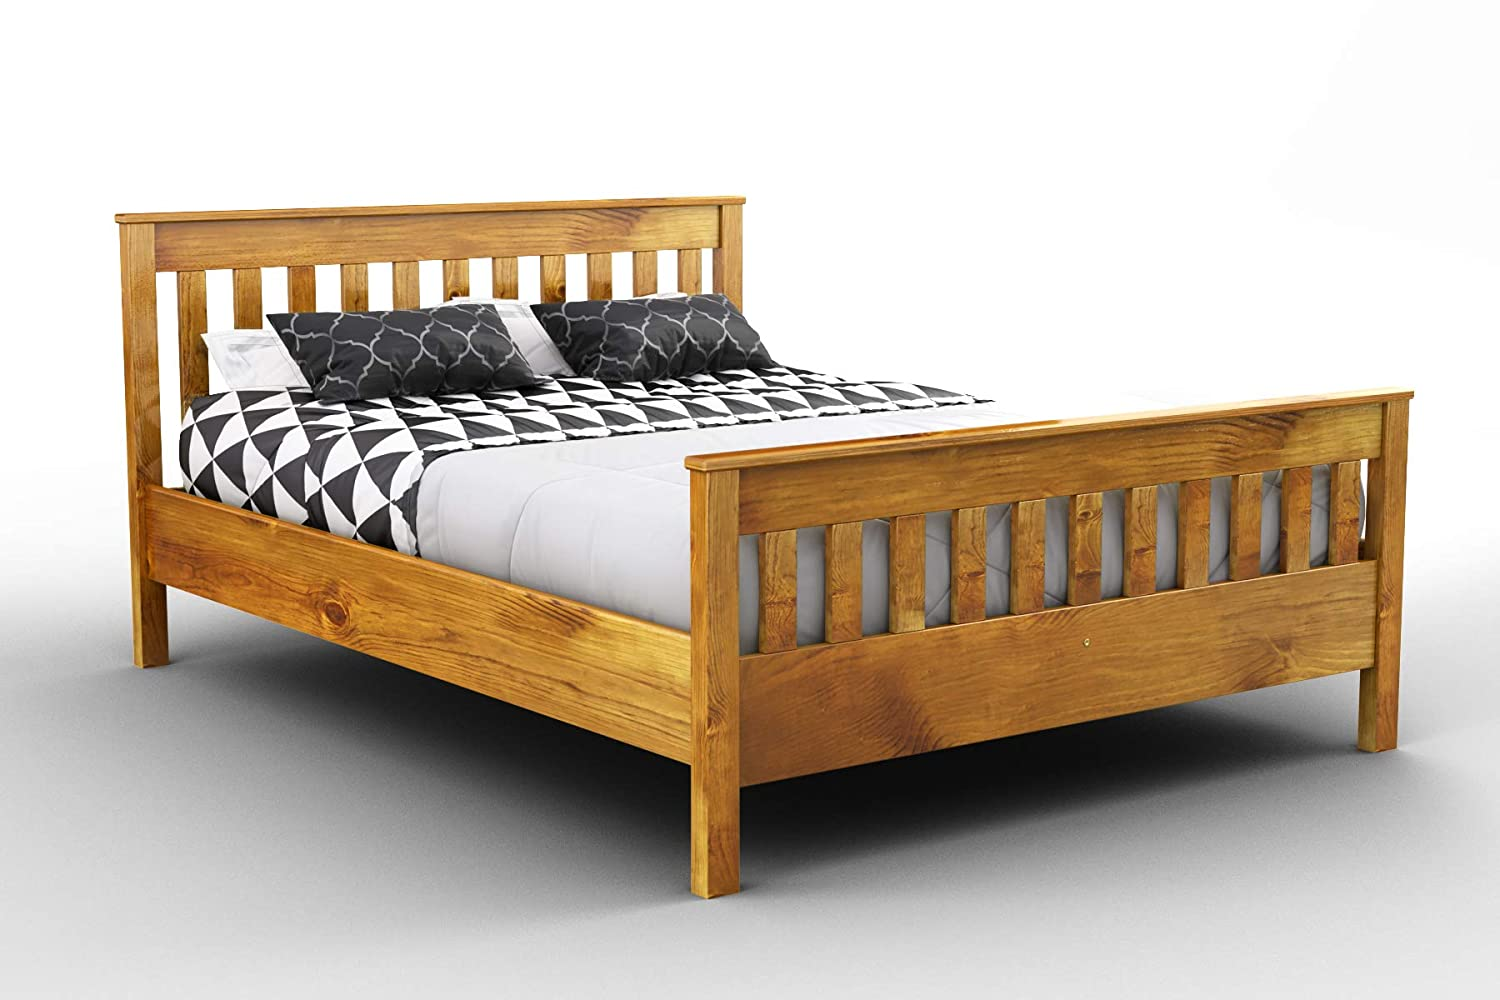 Wooden Pine Bed Frame With Underbed Drawer Set F16 Kingsize